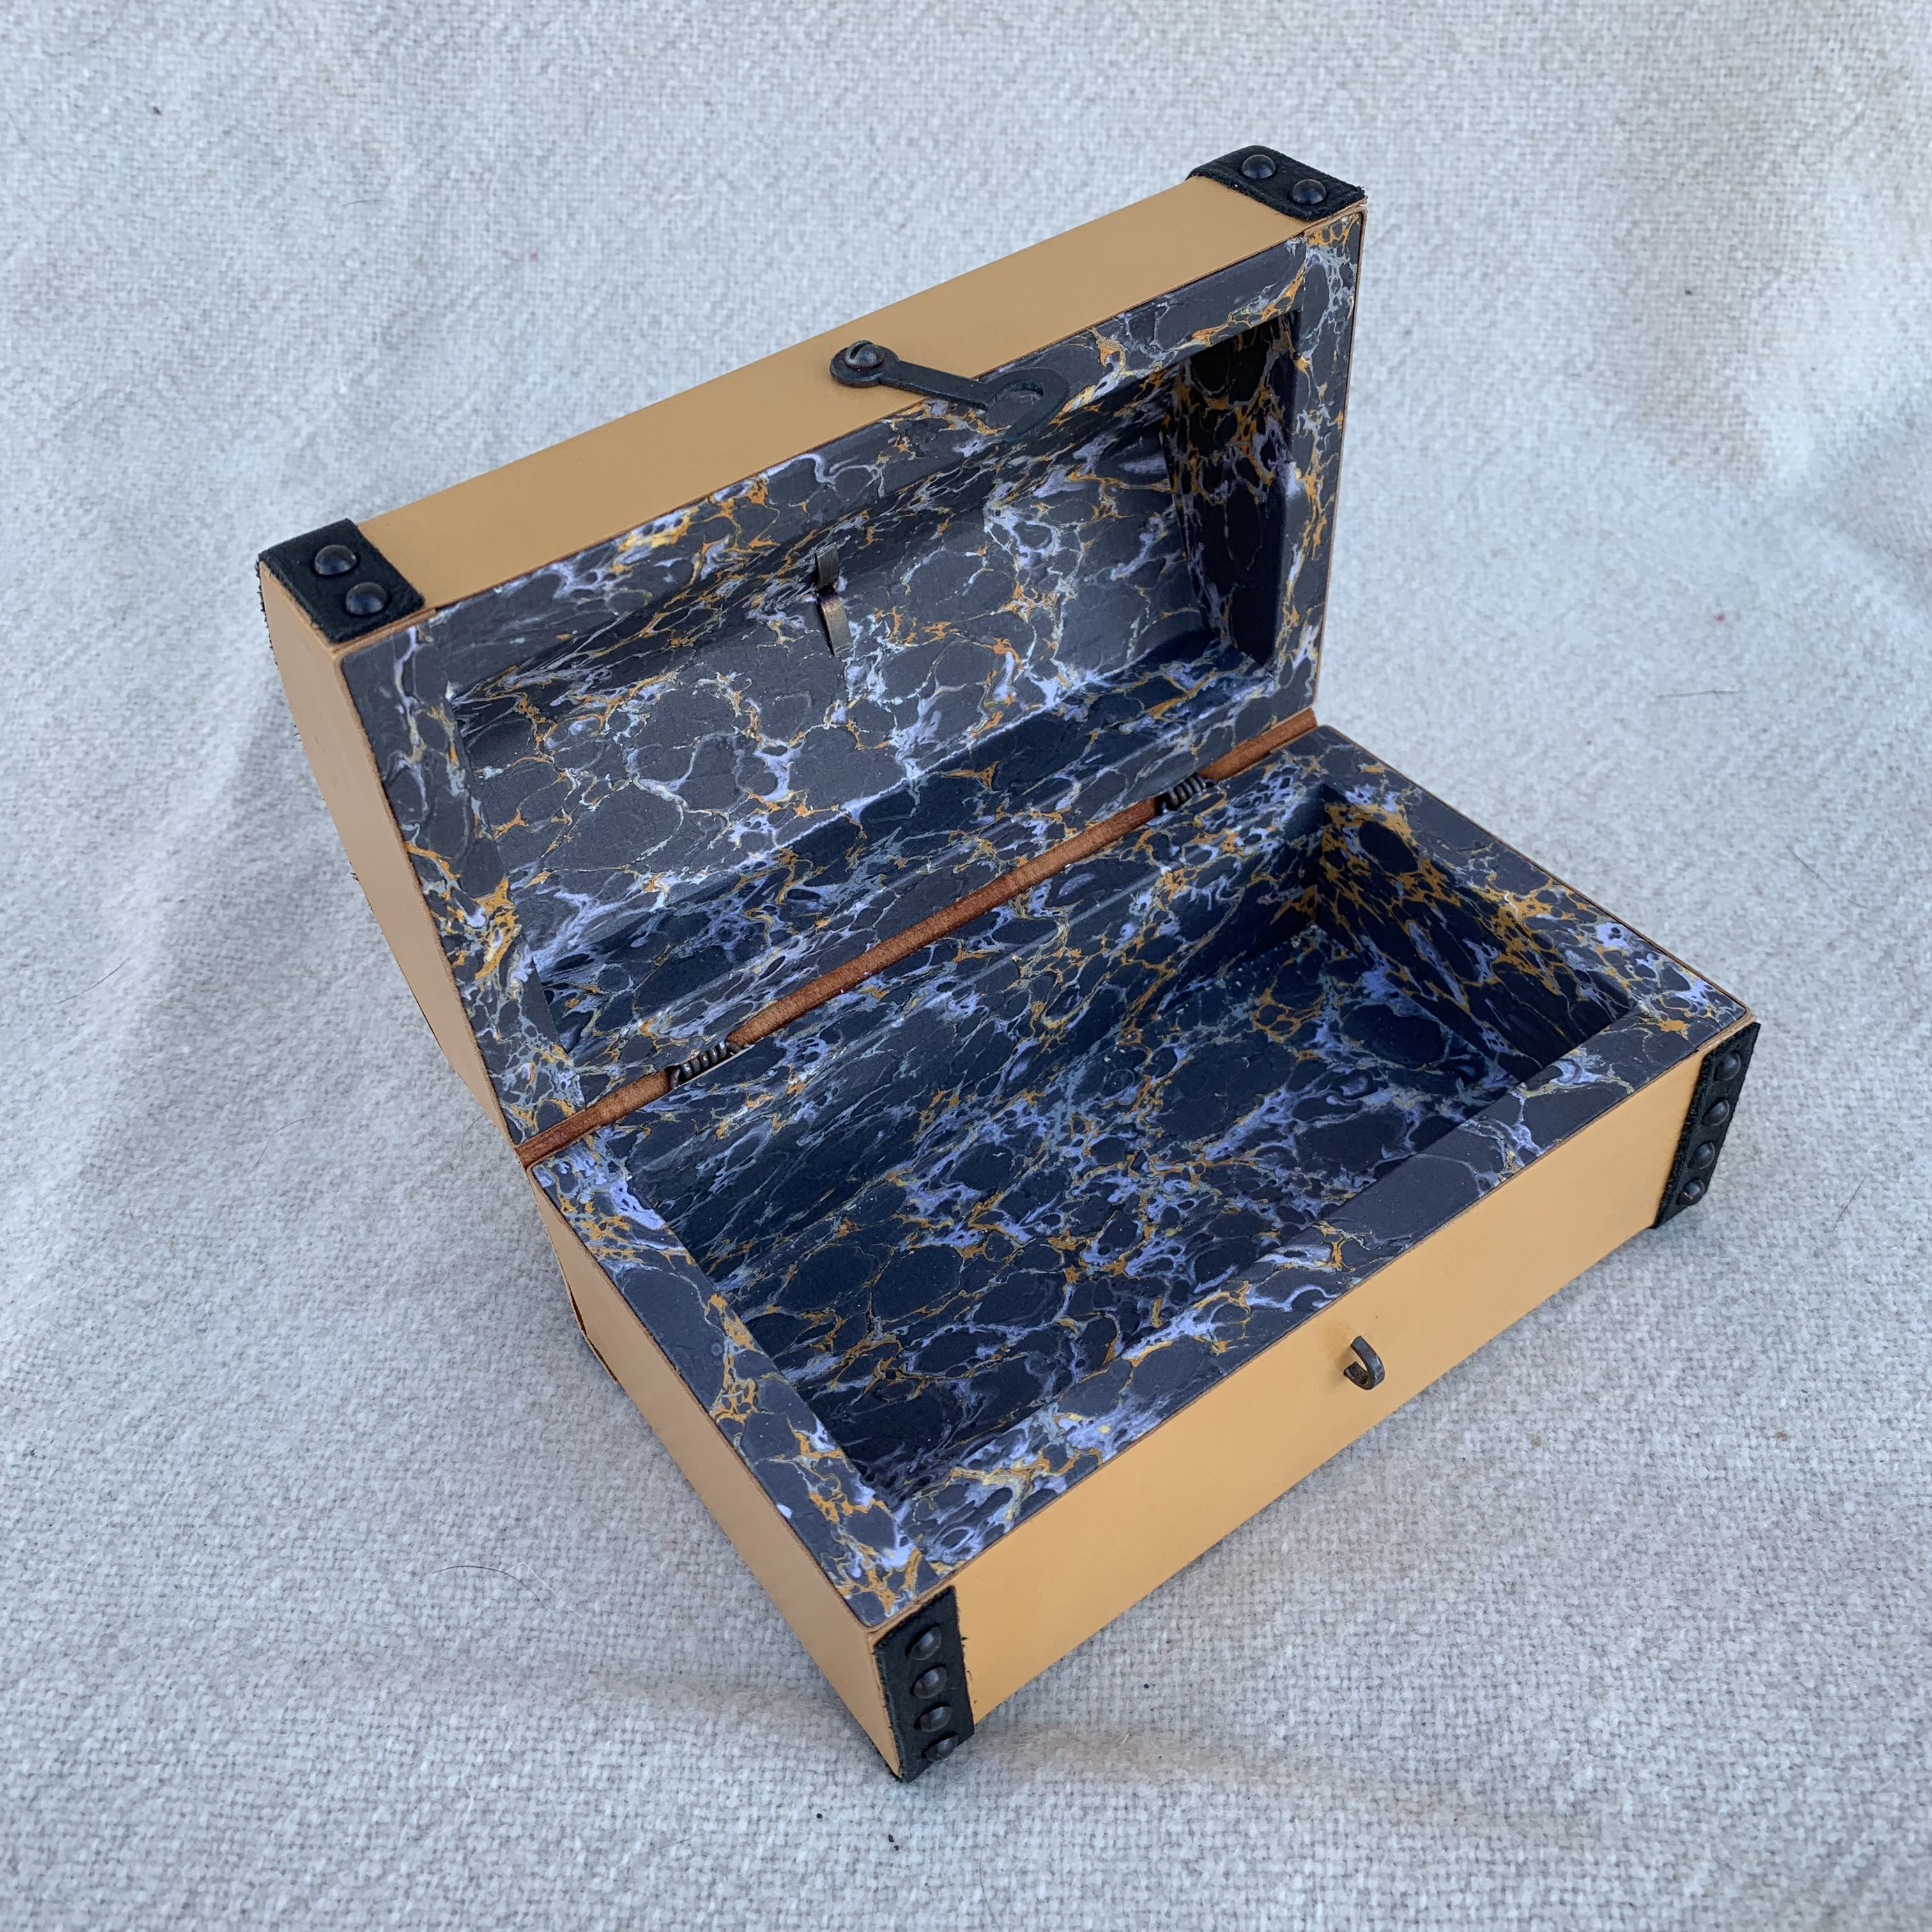 Hand crafted reproduction boxes